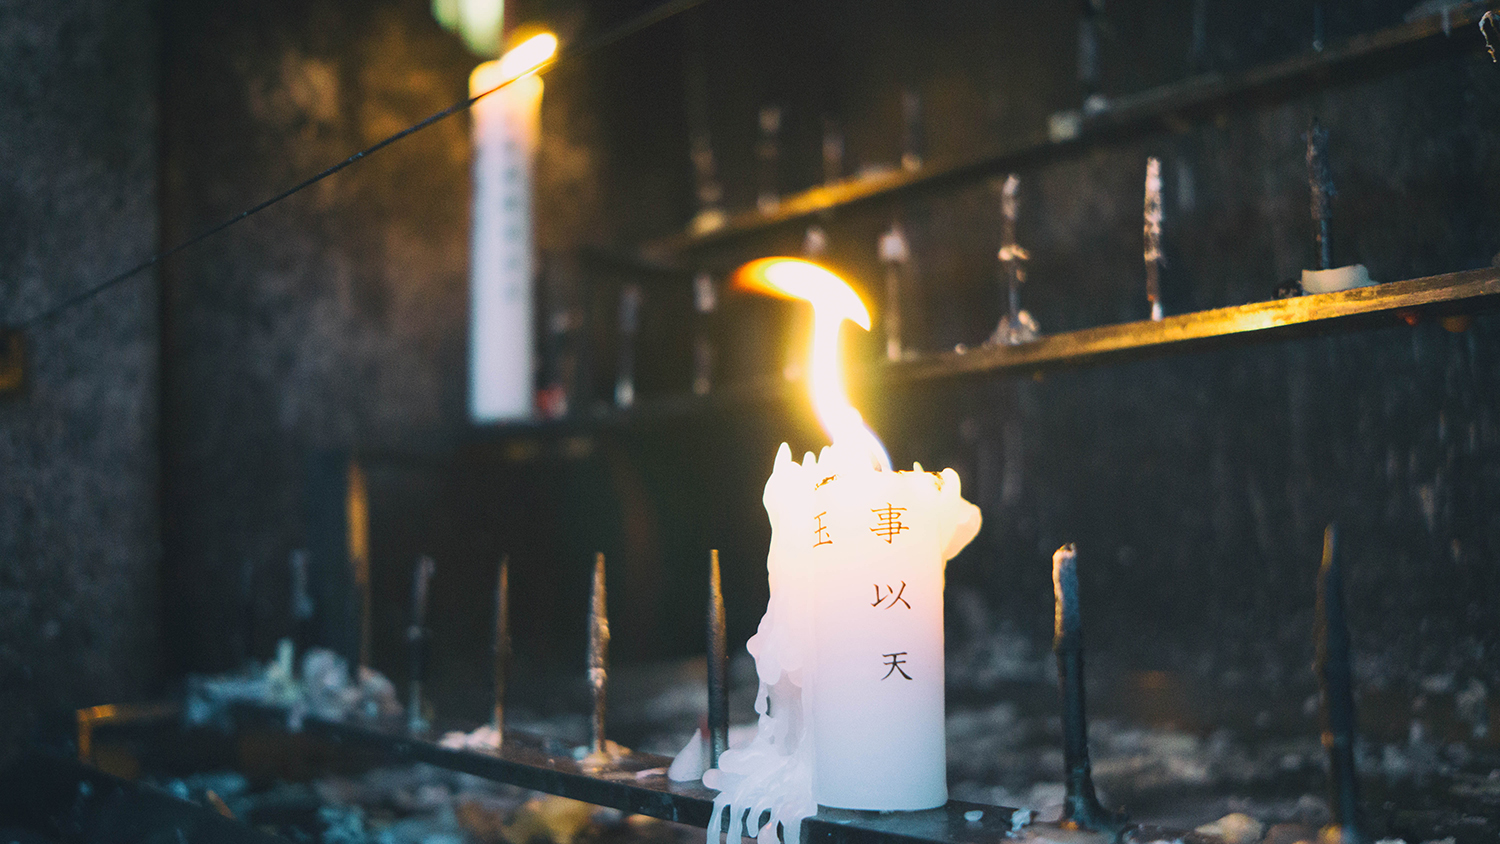 Candles were set just outside the entrance to Mt. Inari.